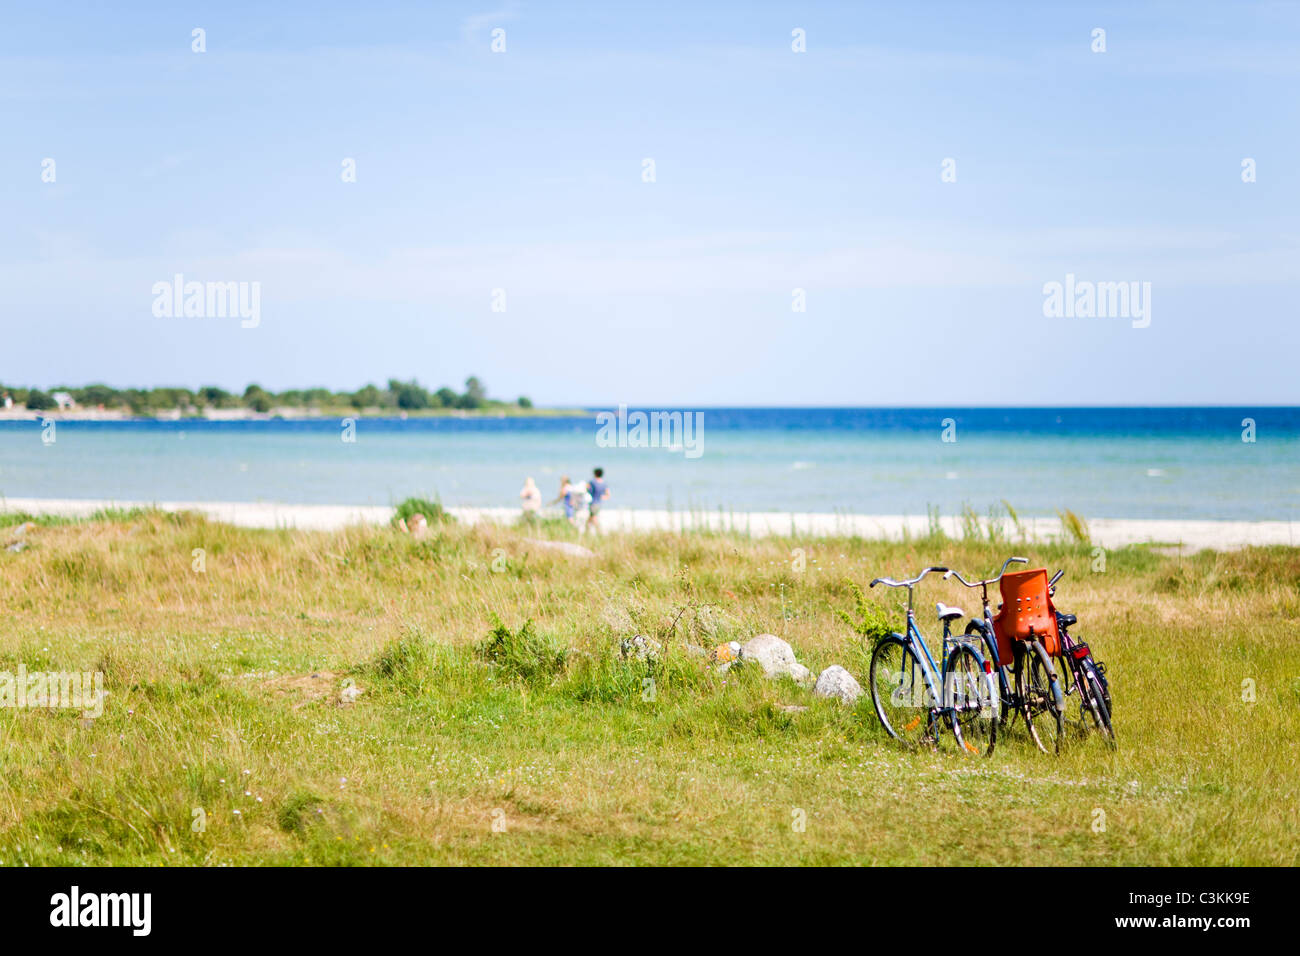 Bicycles on beach - Stock Image